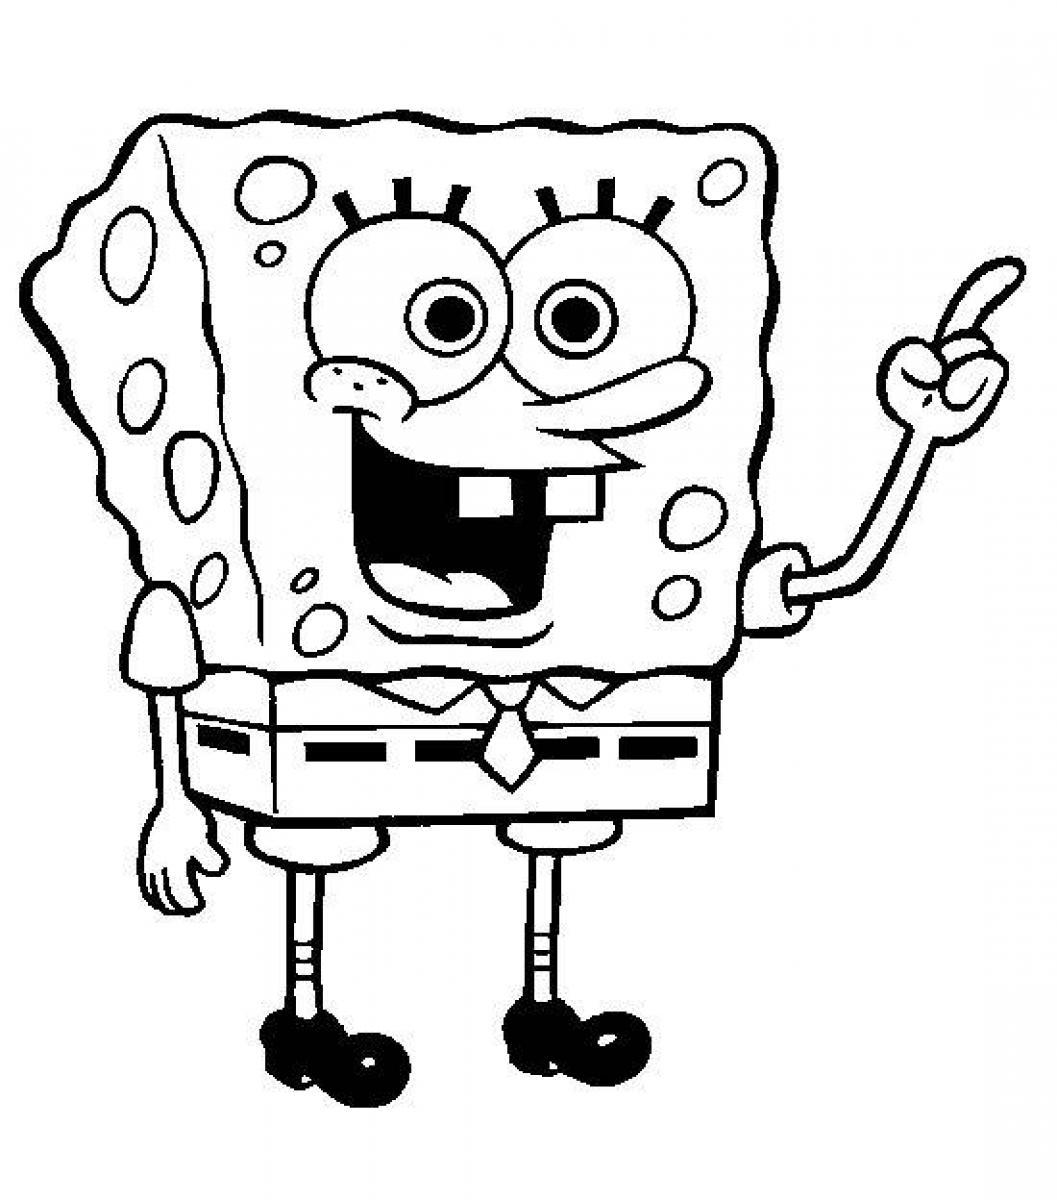 sponge squarepants coloring pages - photo#1